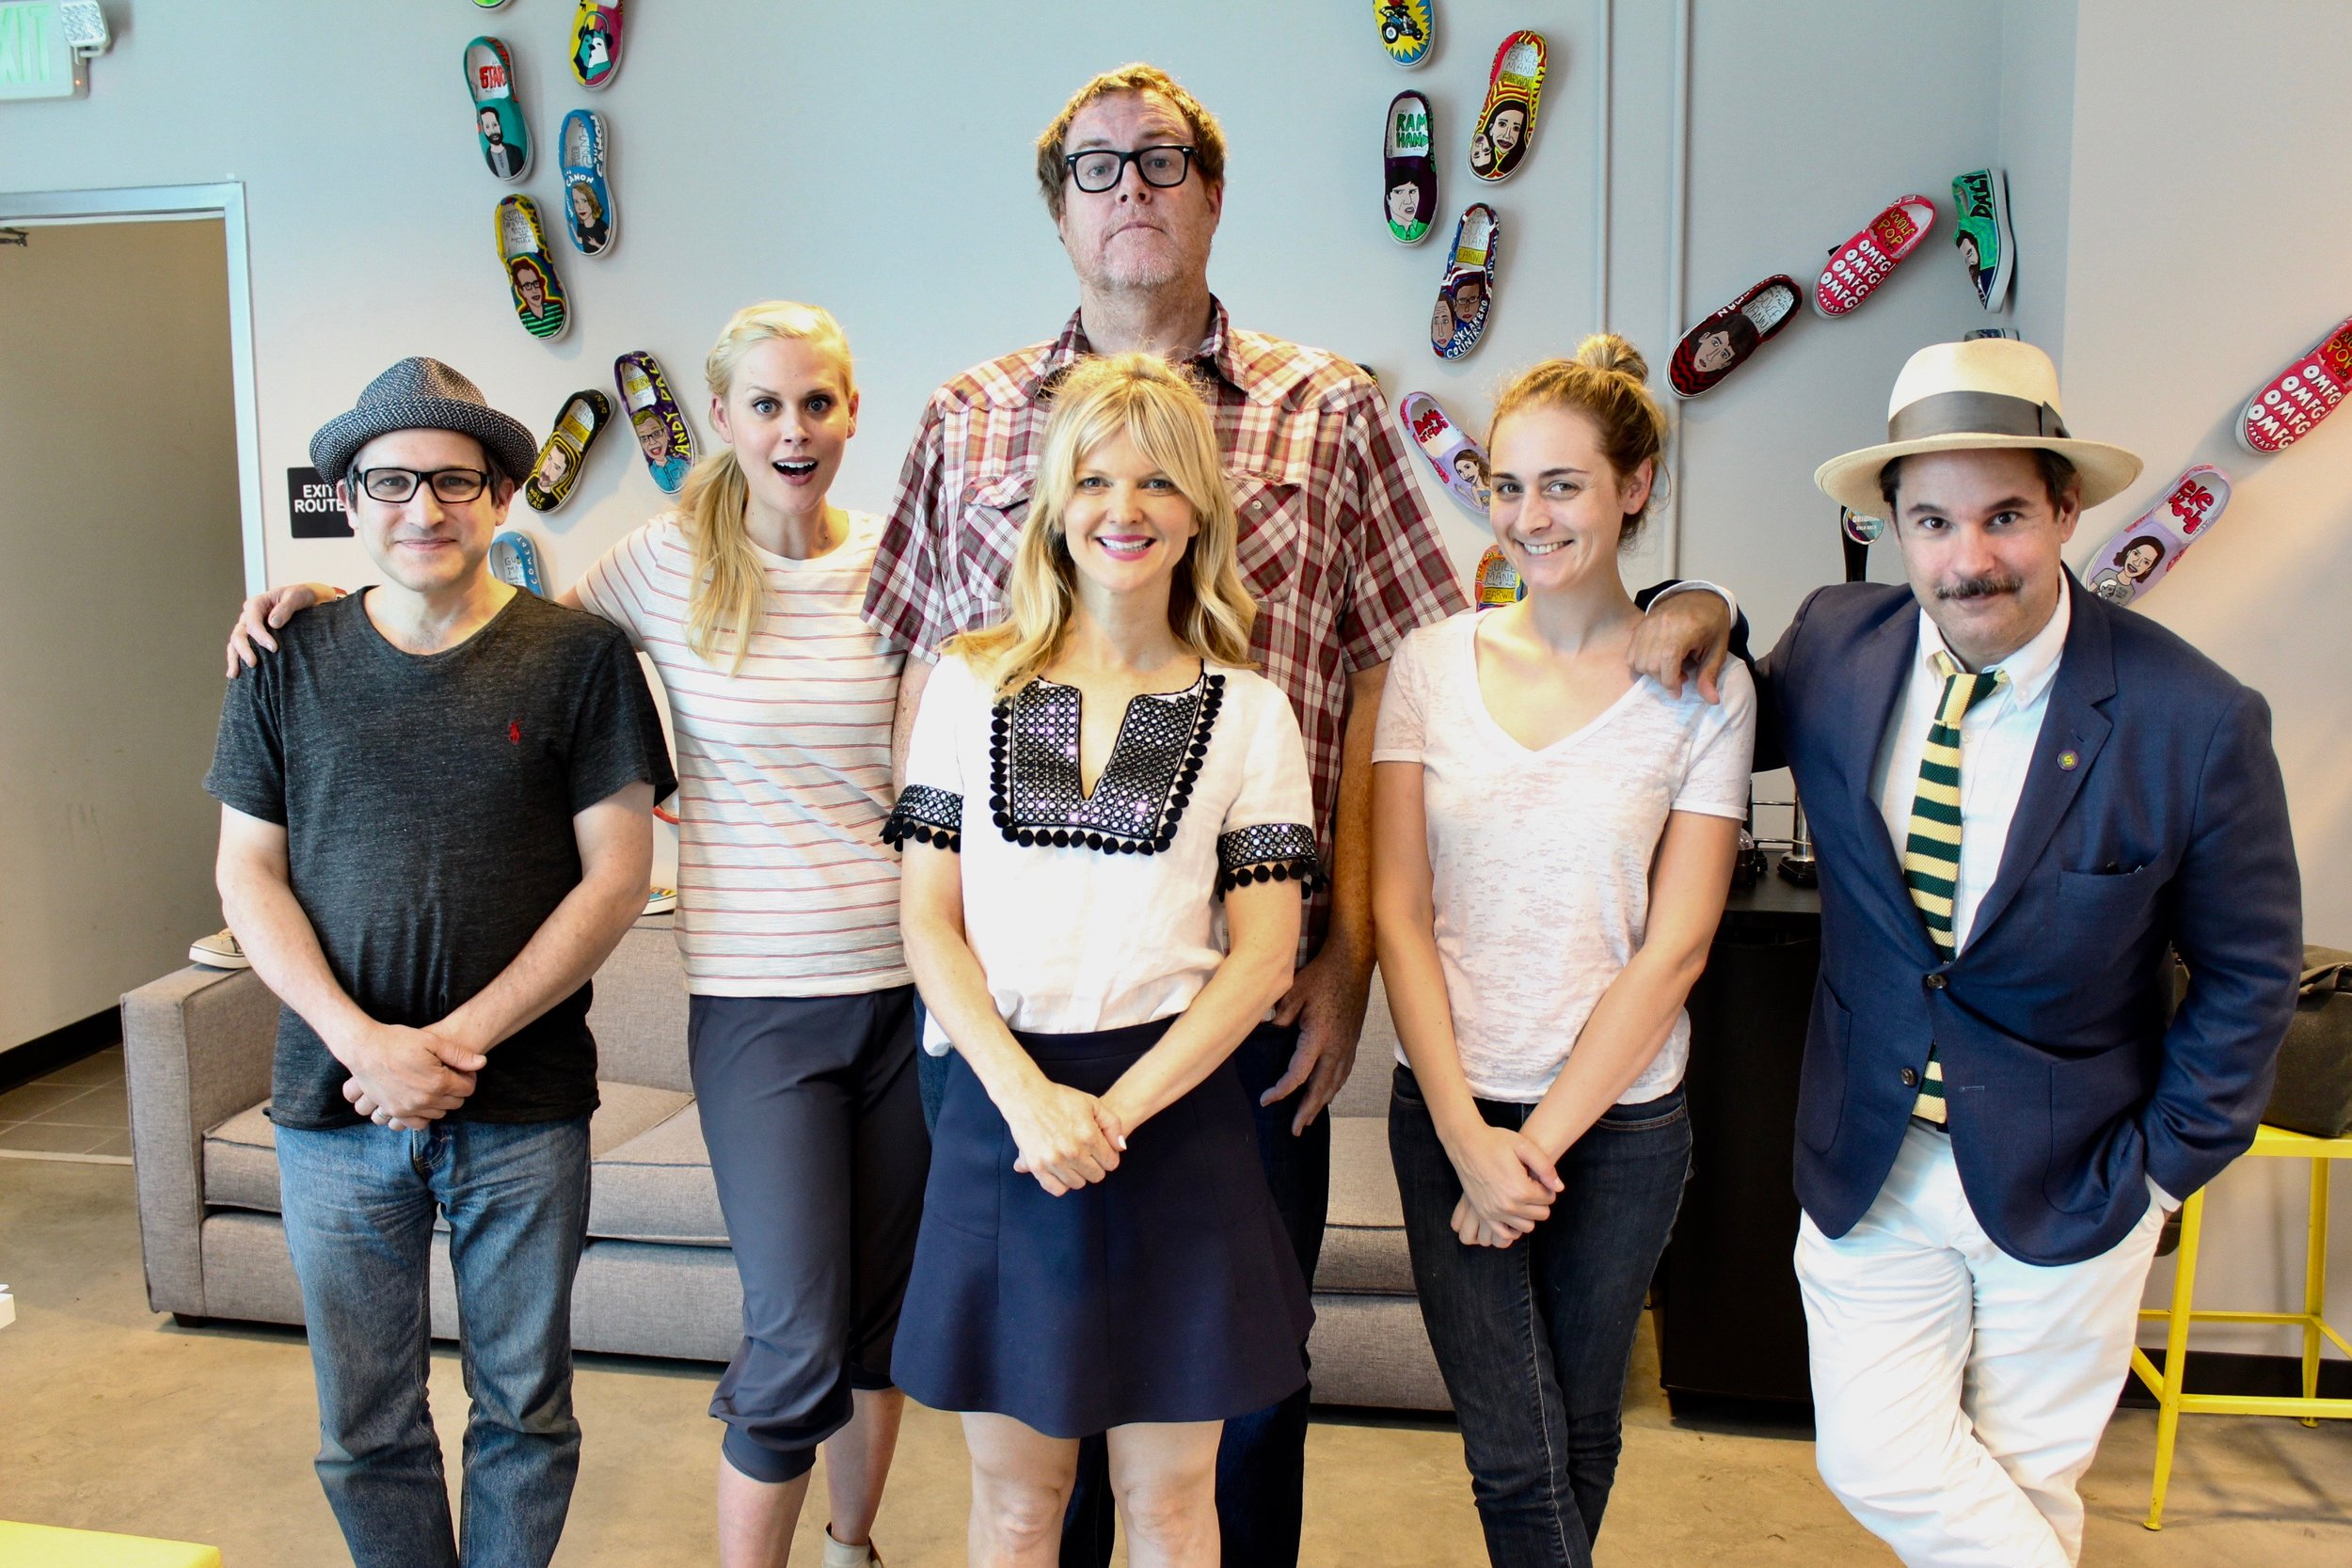 Spontaneanation with Paul F. Tompkins#131 Tommy Bahama Store(September 25th, 2017) - Paul F. Tompkins slowly eases listeners into this week's Spontaneanation! This time out, Paul's special guest is Arden Myrin of MADtv, Shameless, and Will You Accept This Rose! They chat about the last time Arden pretended to know something, just starting to tell the truth after realizing she was lying all the time, and learning some stuff way too soon from her sex-ed teacher. Then, they are joined by improvisers Maria Blasucci, Little Janet Varney, and Steve Agee to improvise a story set in a Tommy Bahama Store. And as always, Eban (only the best) Schletter scores it all on piano!